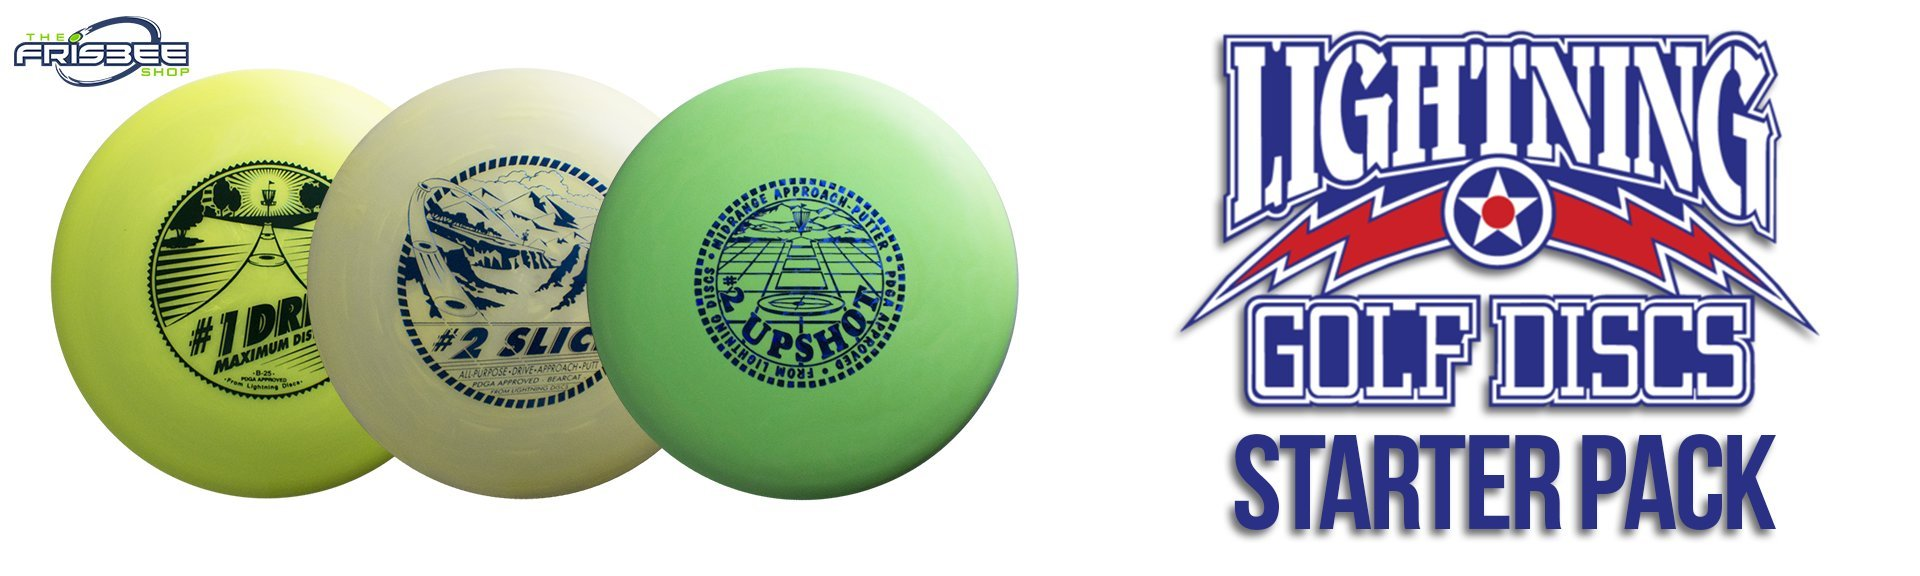 Frisbee Shop - Lightning Starter Pack